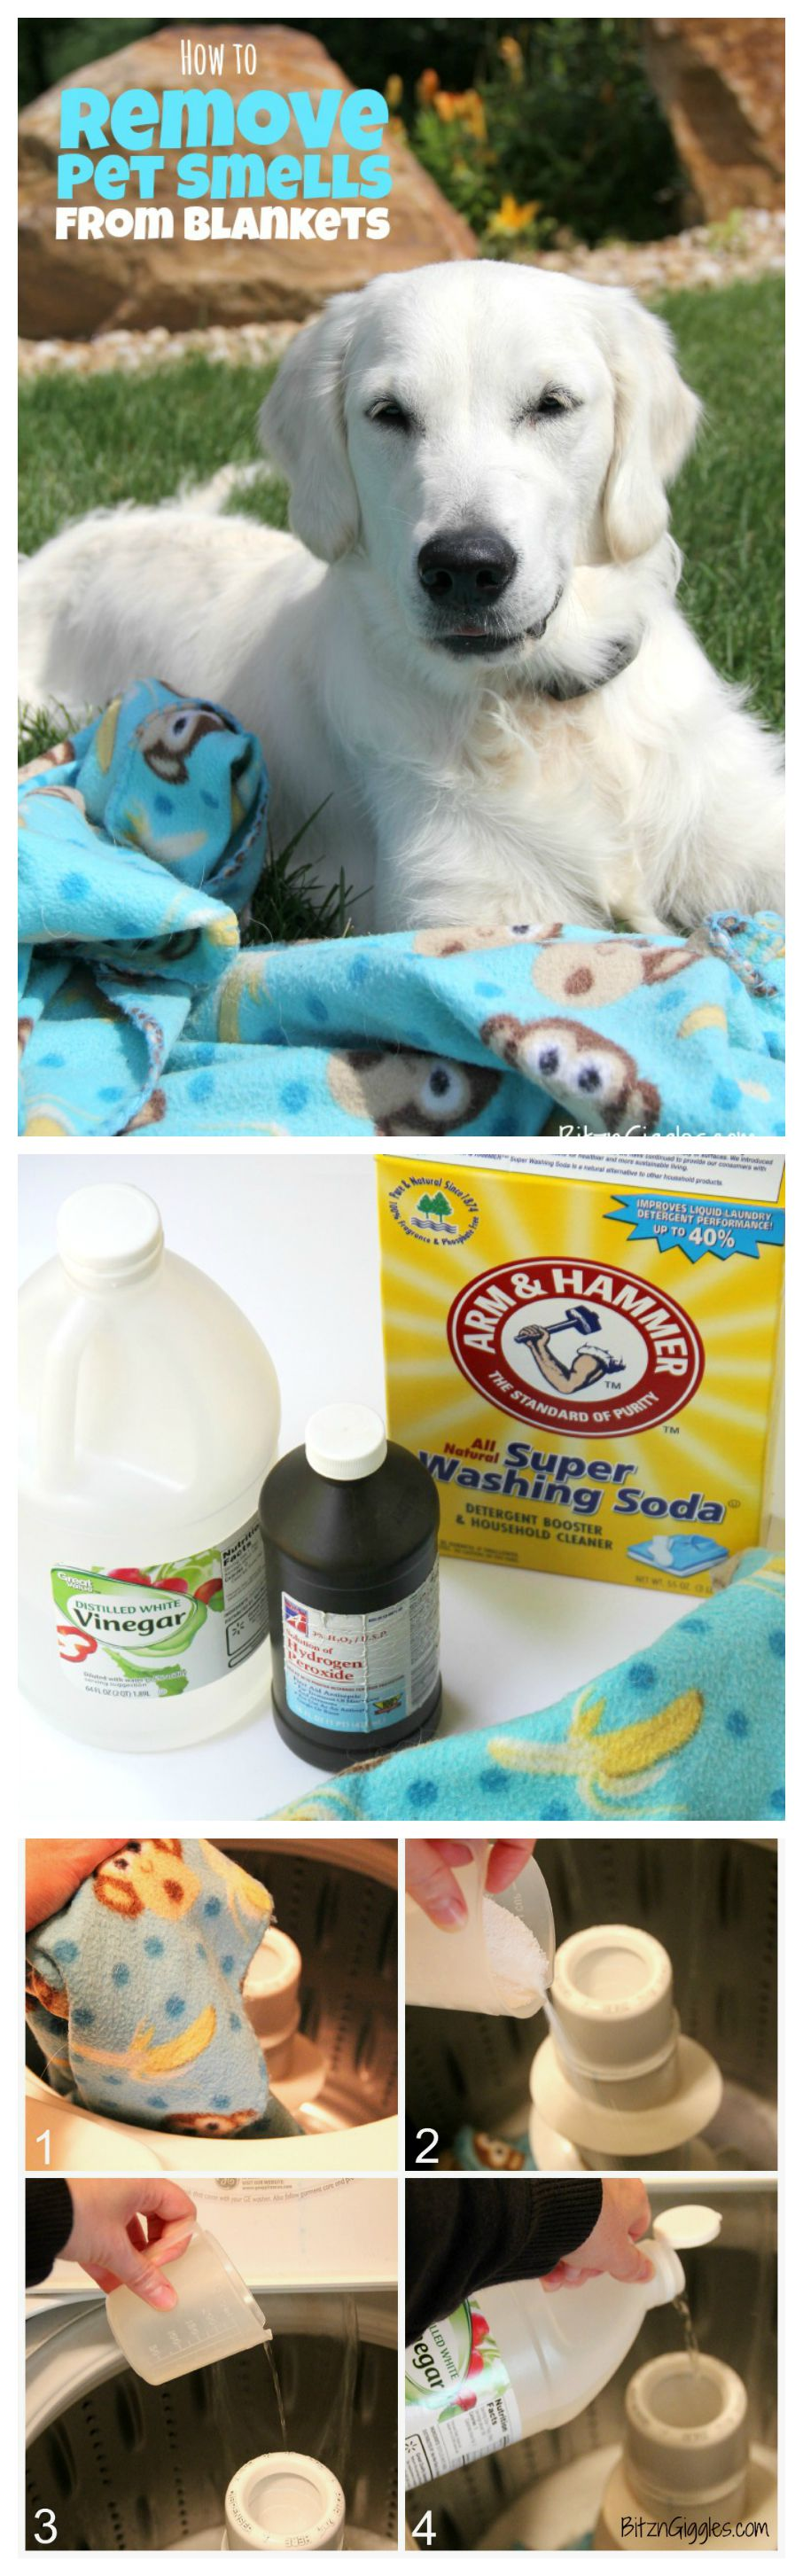 How to Remove Pet Smells From Blankets - Got a stinky blanket that you just can't seem to get the smell out of? This cleaning solution really works!